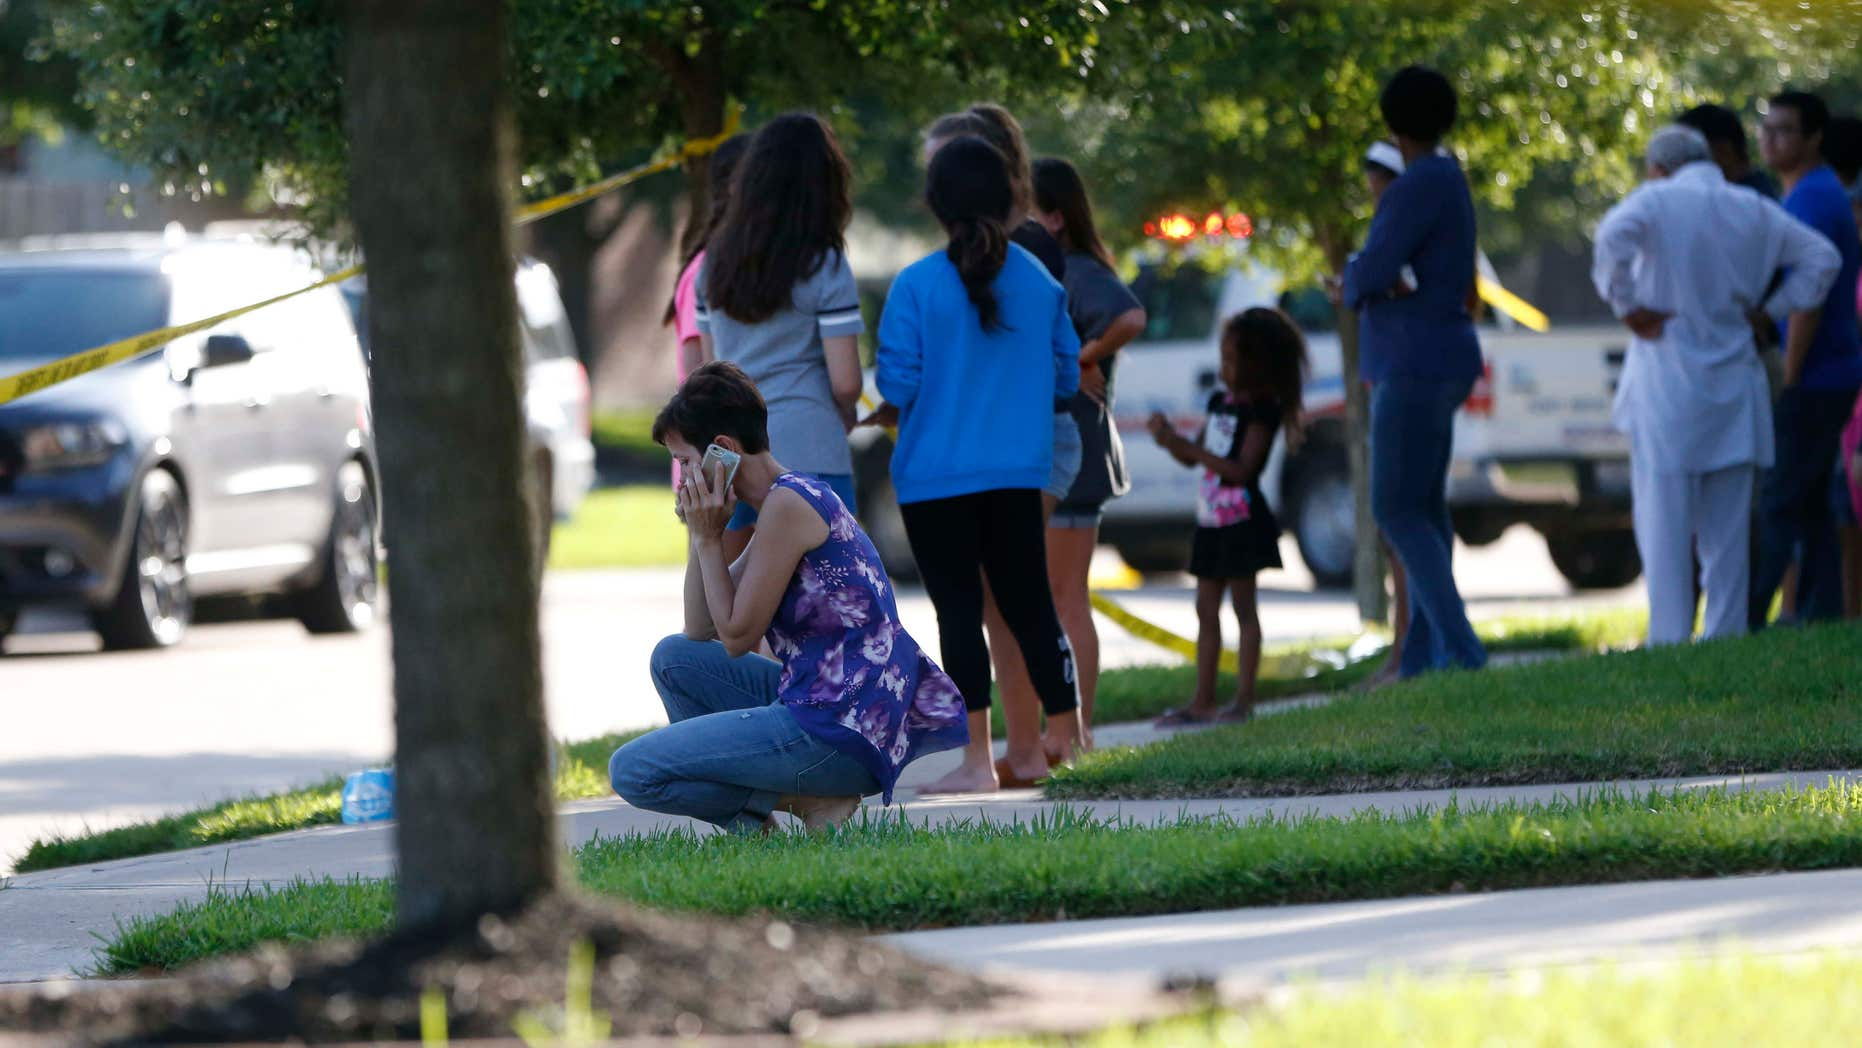 In this Friday, June 24, 2016 photo, neighbors gather to watch as Fort Bend County Sheriffs department investigates a shooting at Blanchard Grove and Remson Hollow in Katy, Texas.